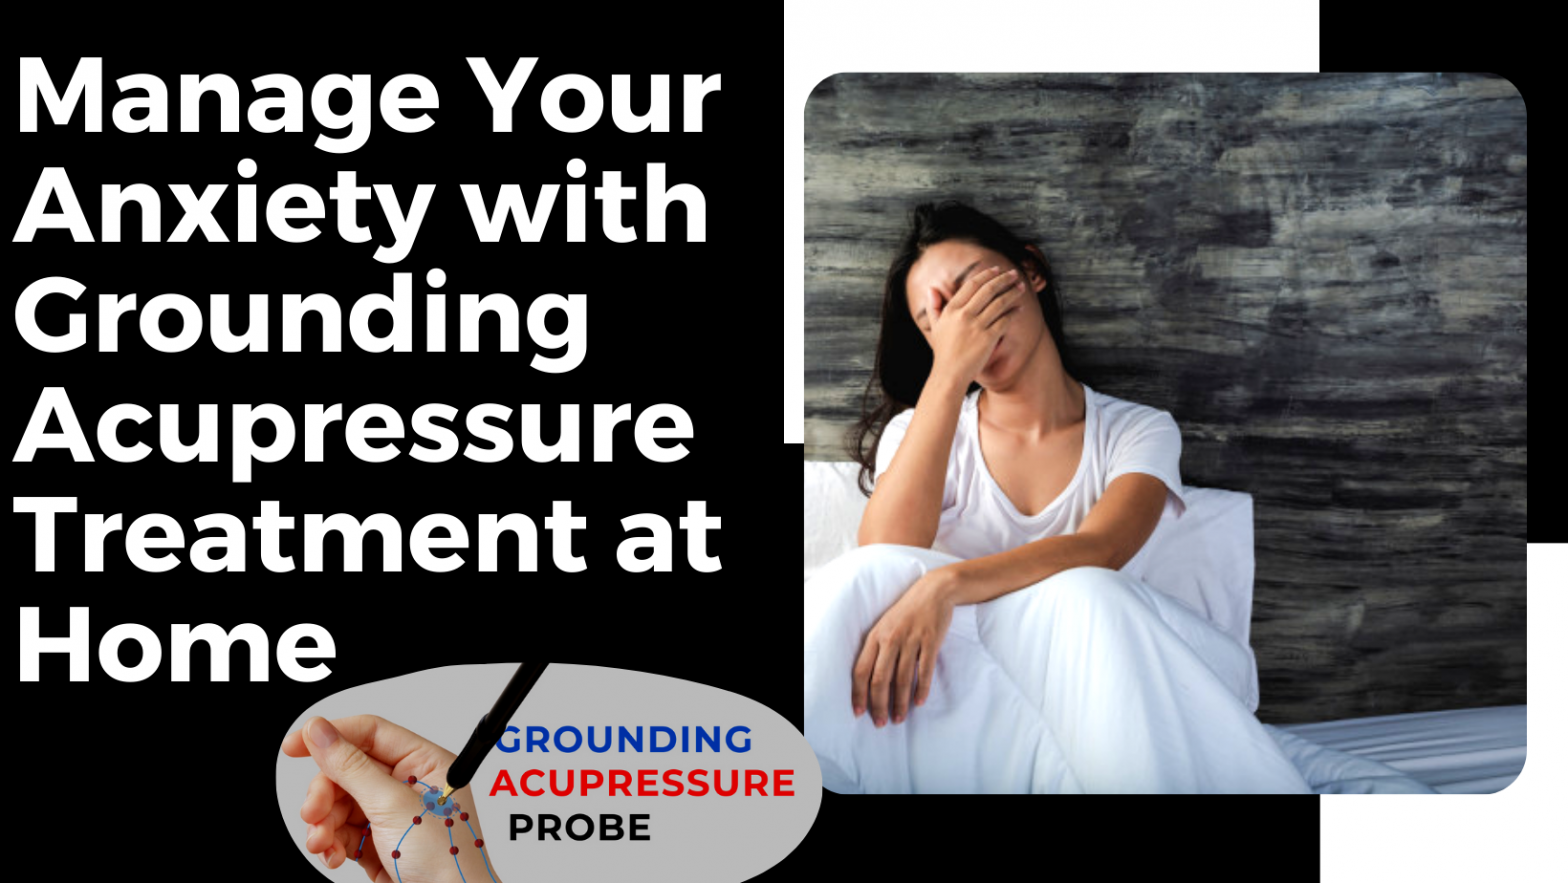 Grounding Acupressure Treatment at Home